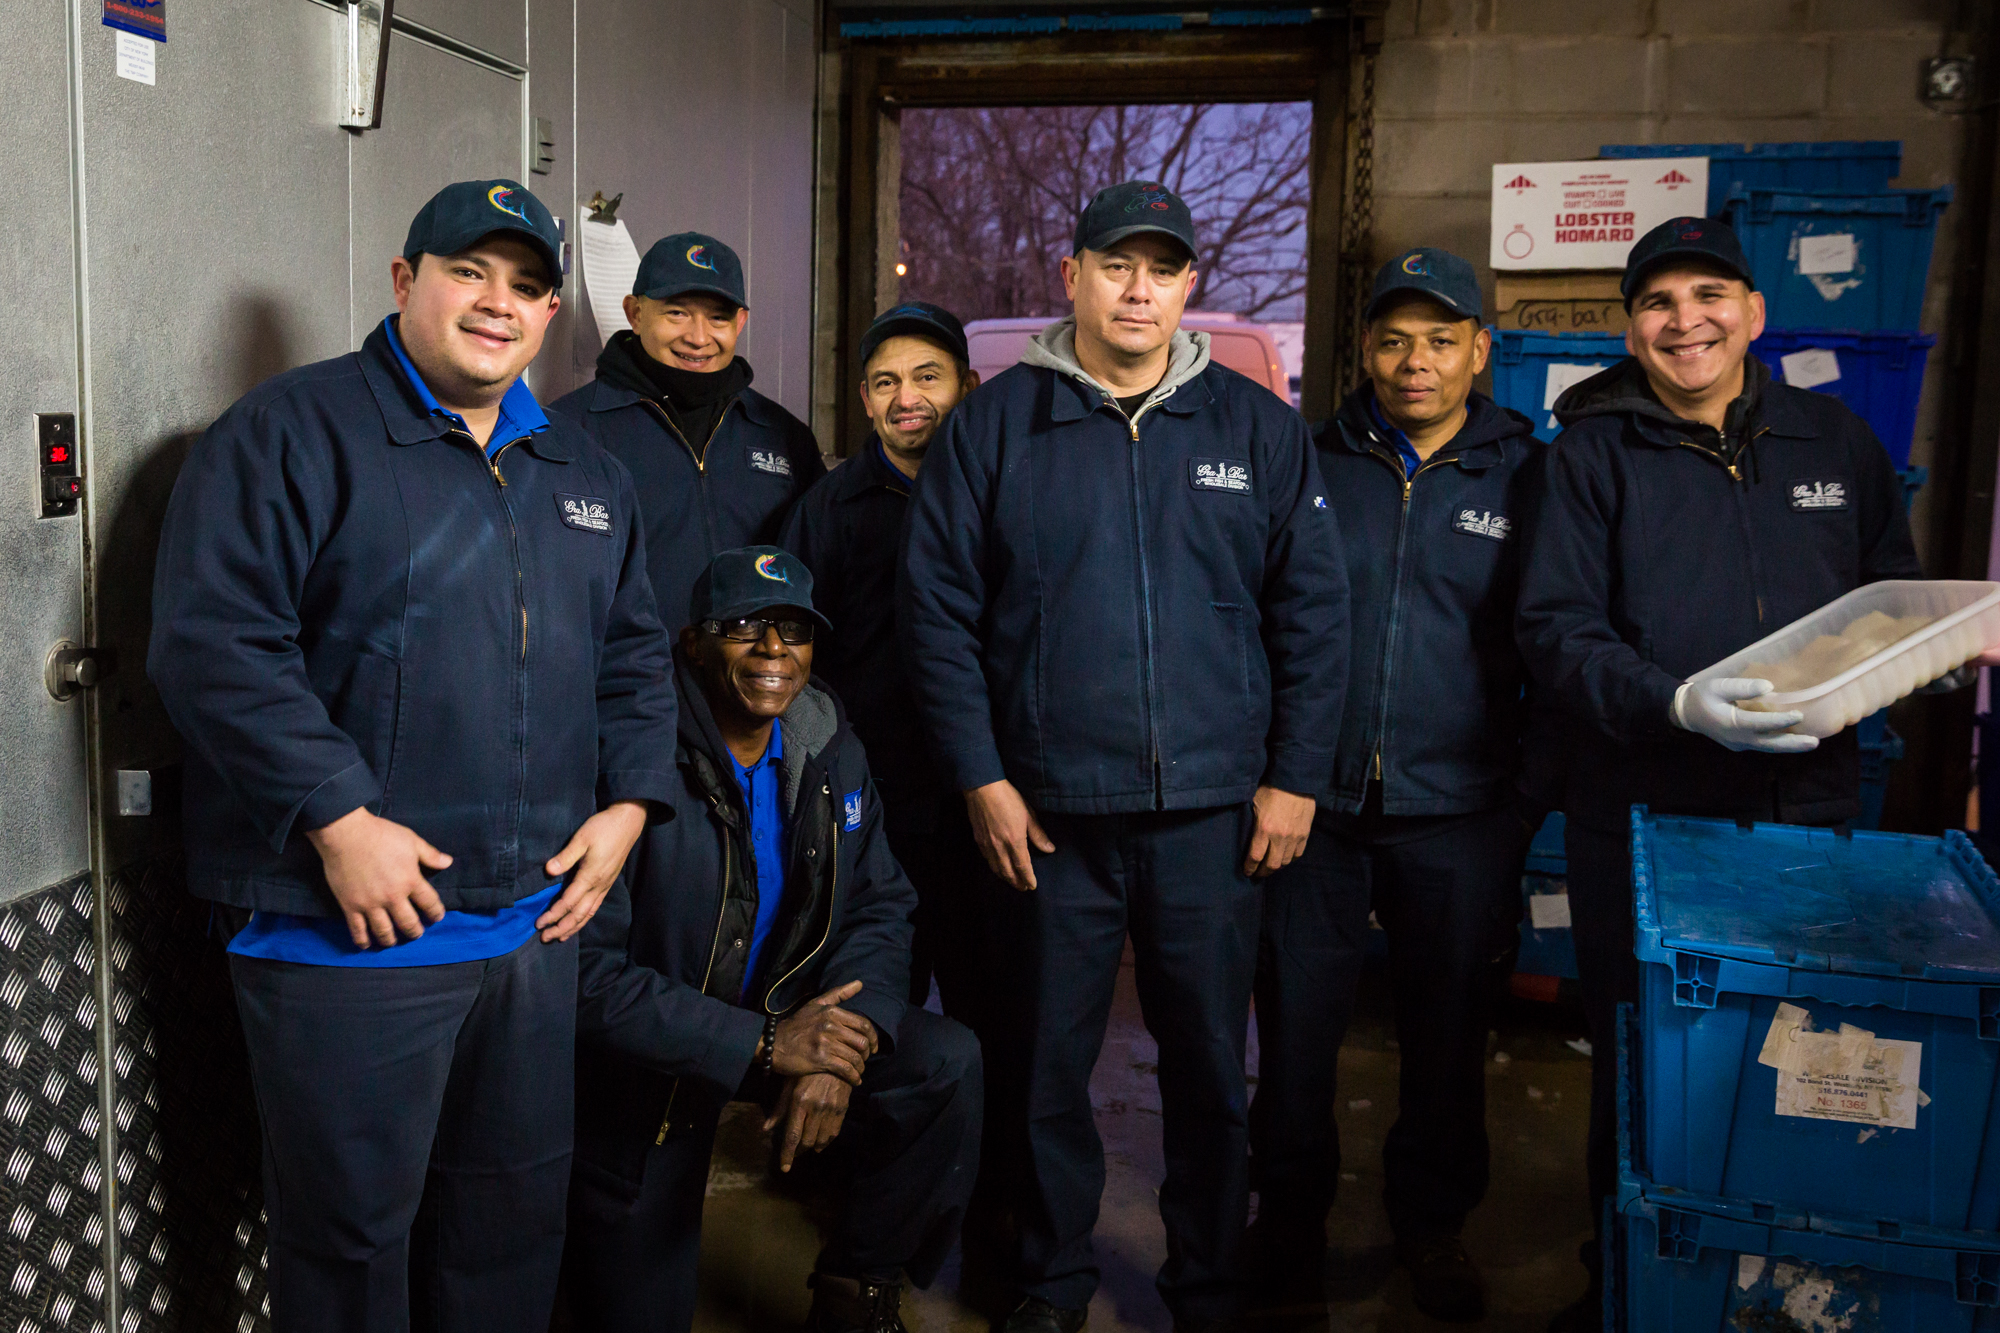 Group photo of workers for an article on website photography tips